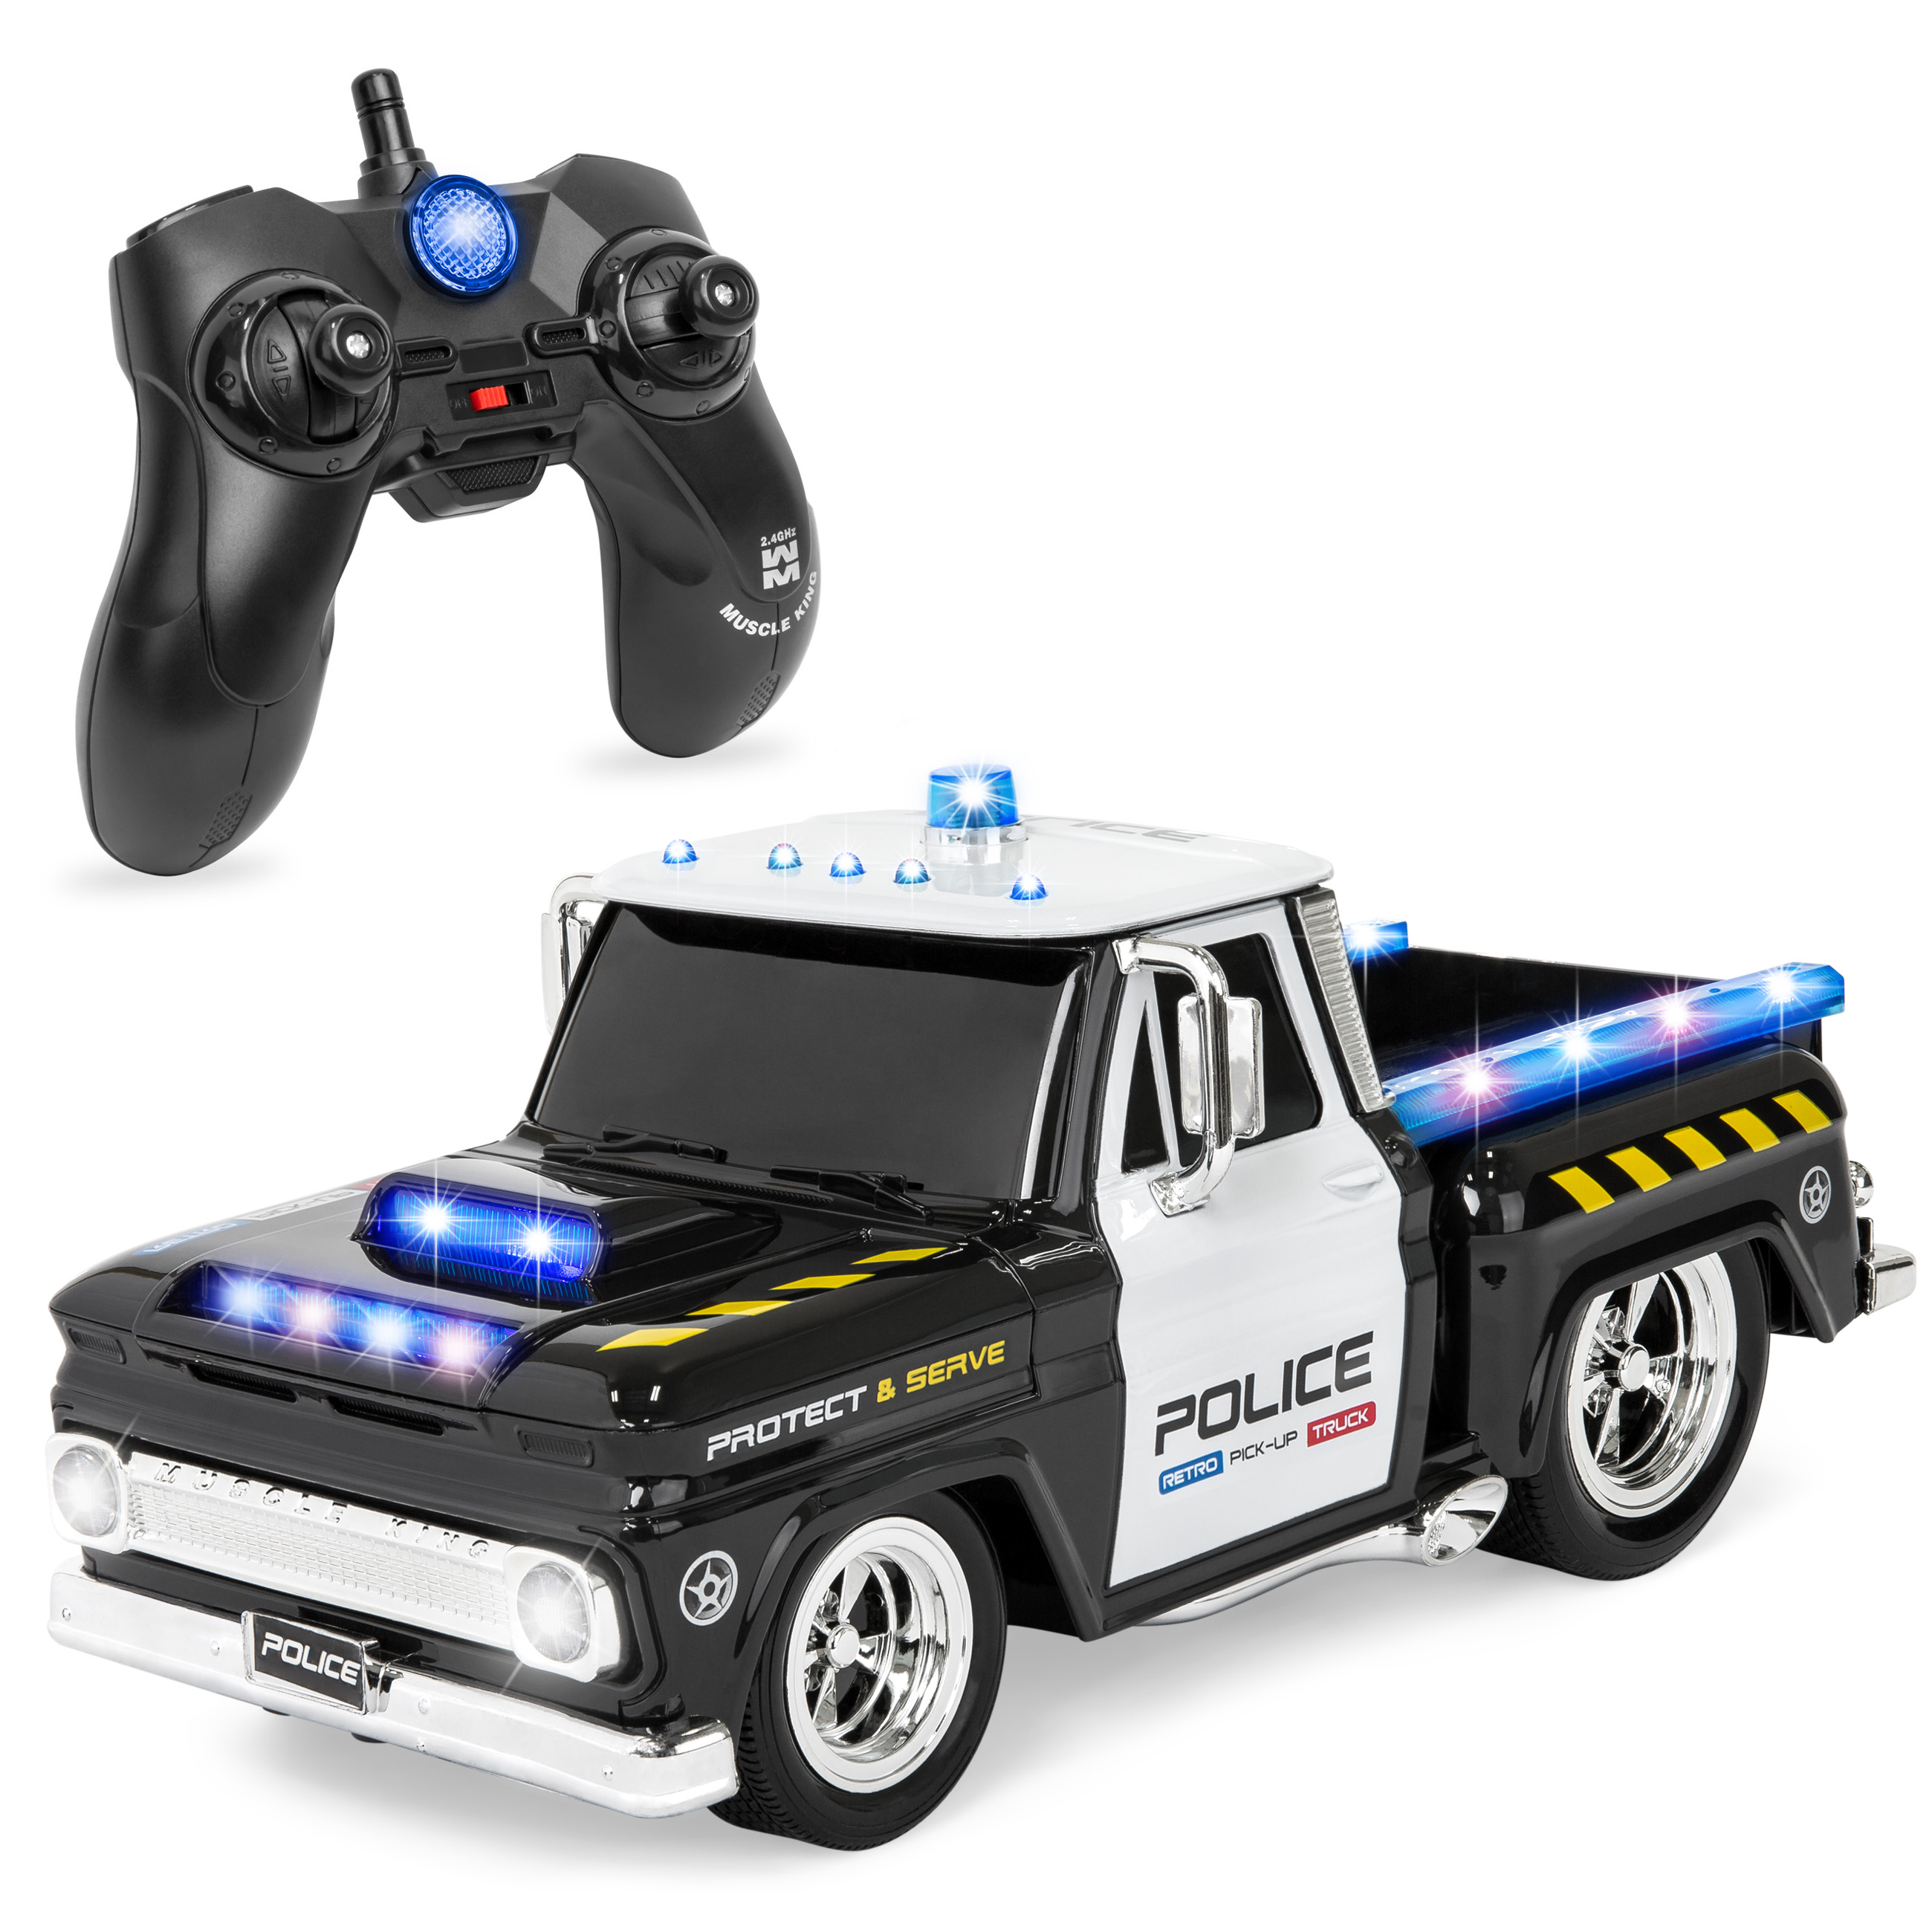 Best Choice Products 1 16 Scale Kids Remote Control Police Emergency Rescue Truck RC Car Toy w  Headlights,... by Best Choice Products